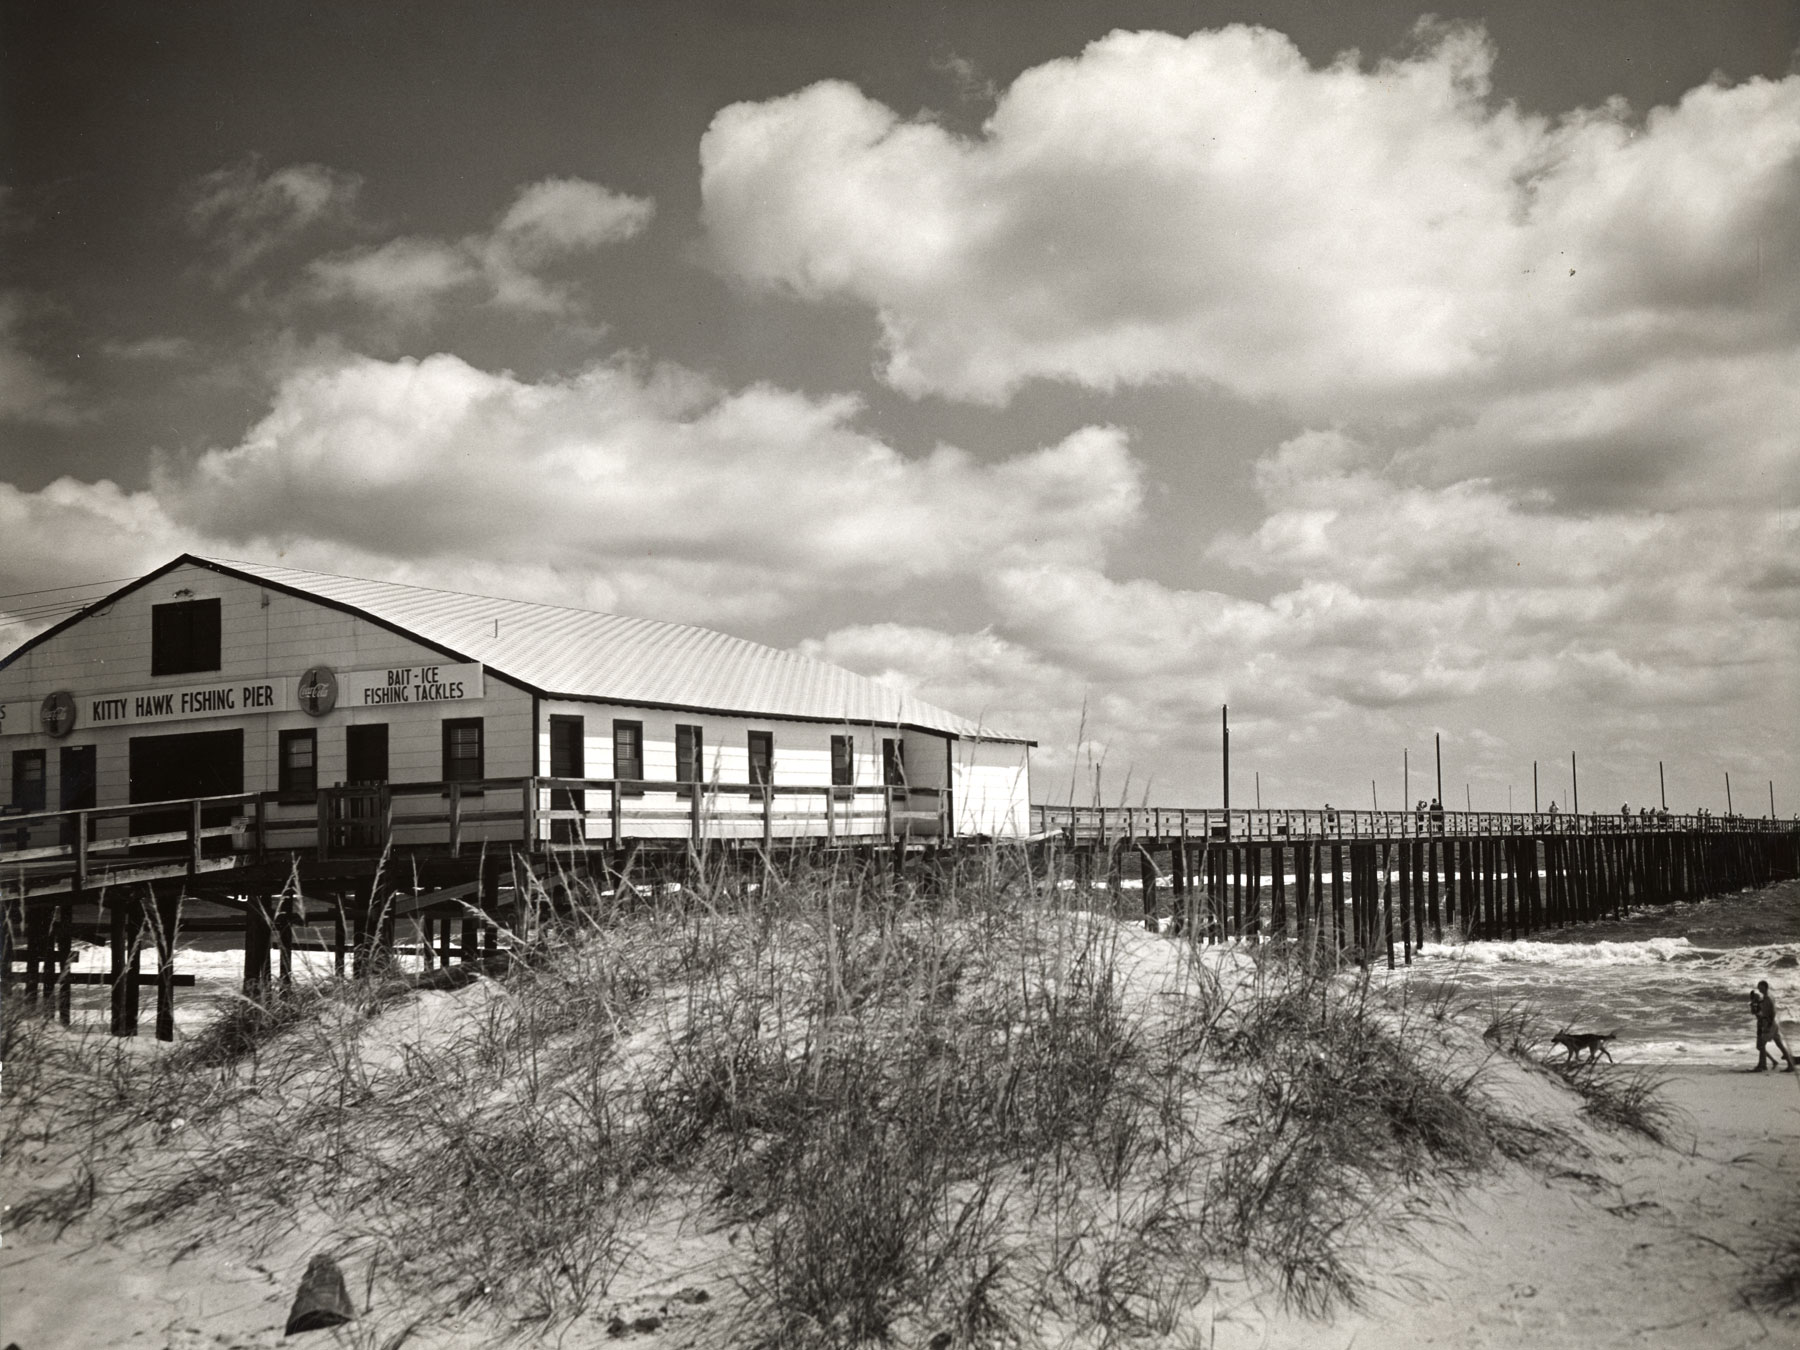 Photo of Kitty Hawk Pier | Photo by BJ Nixon, Outer Banks History Center